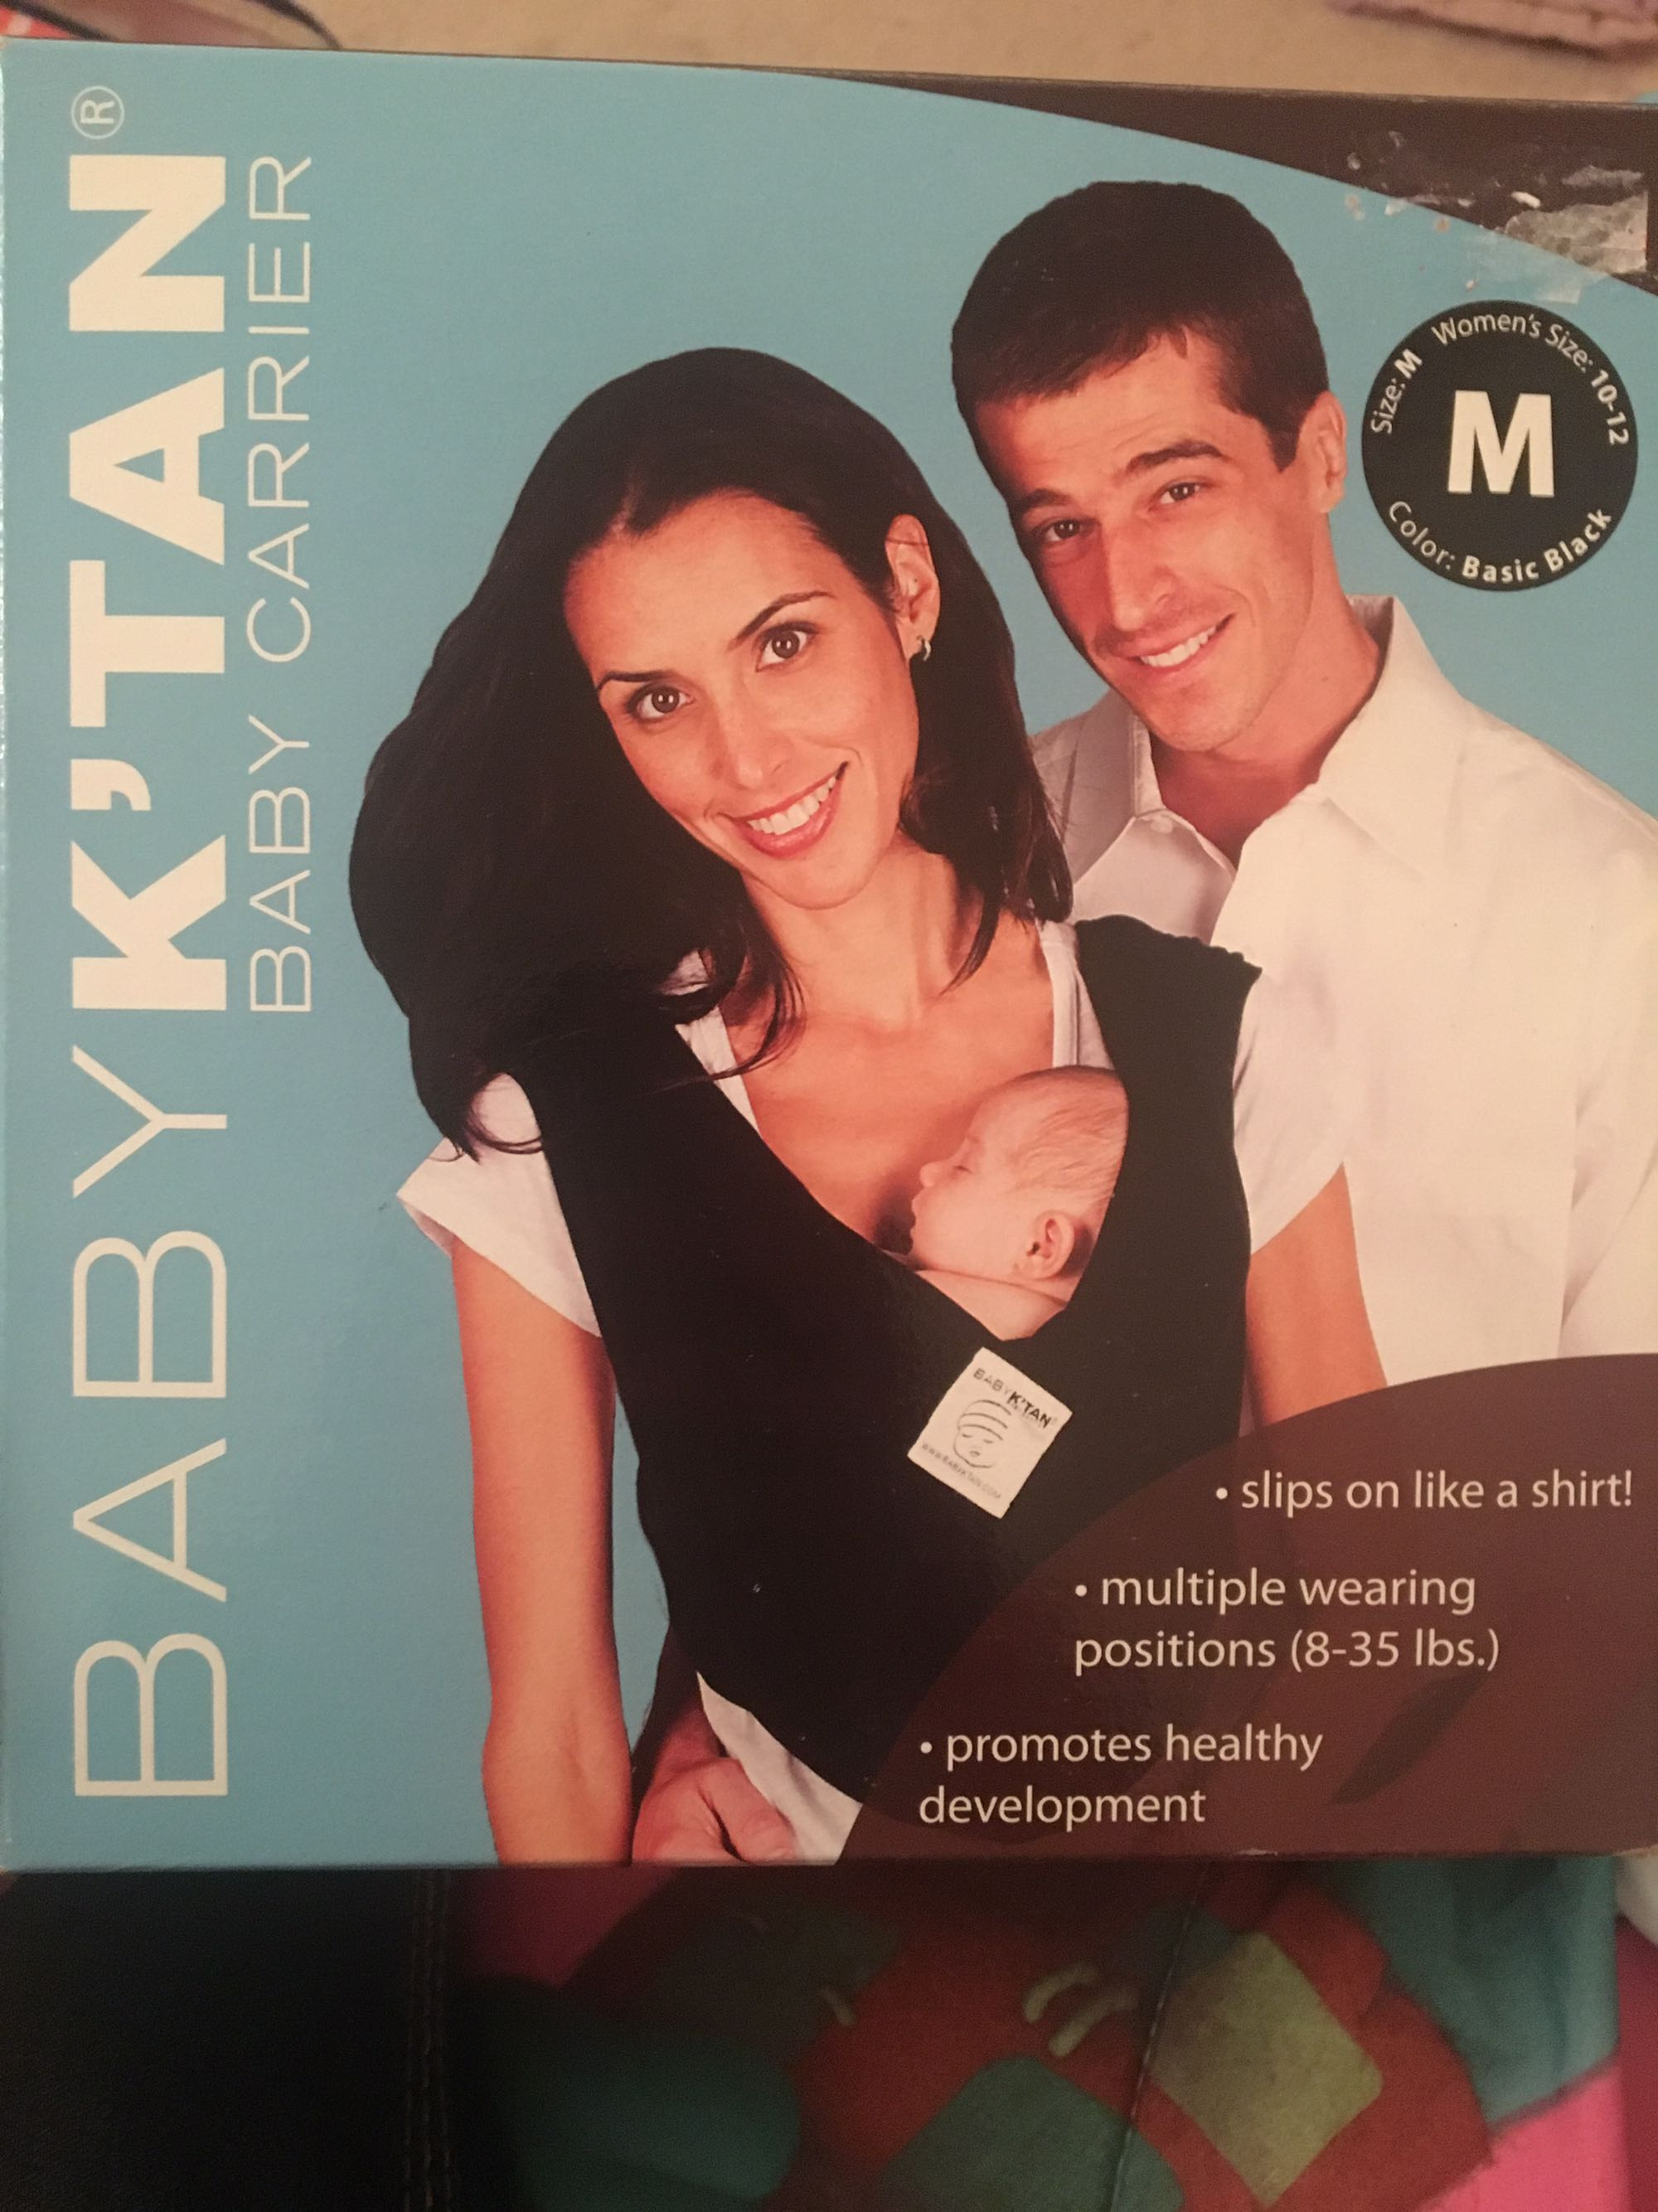 Baby K'Tan Carrier Size Medium